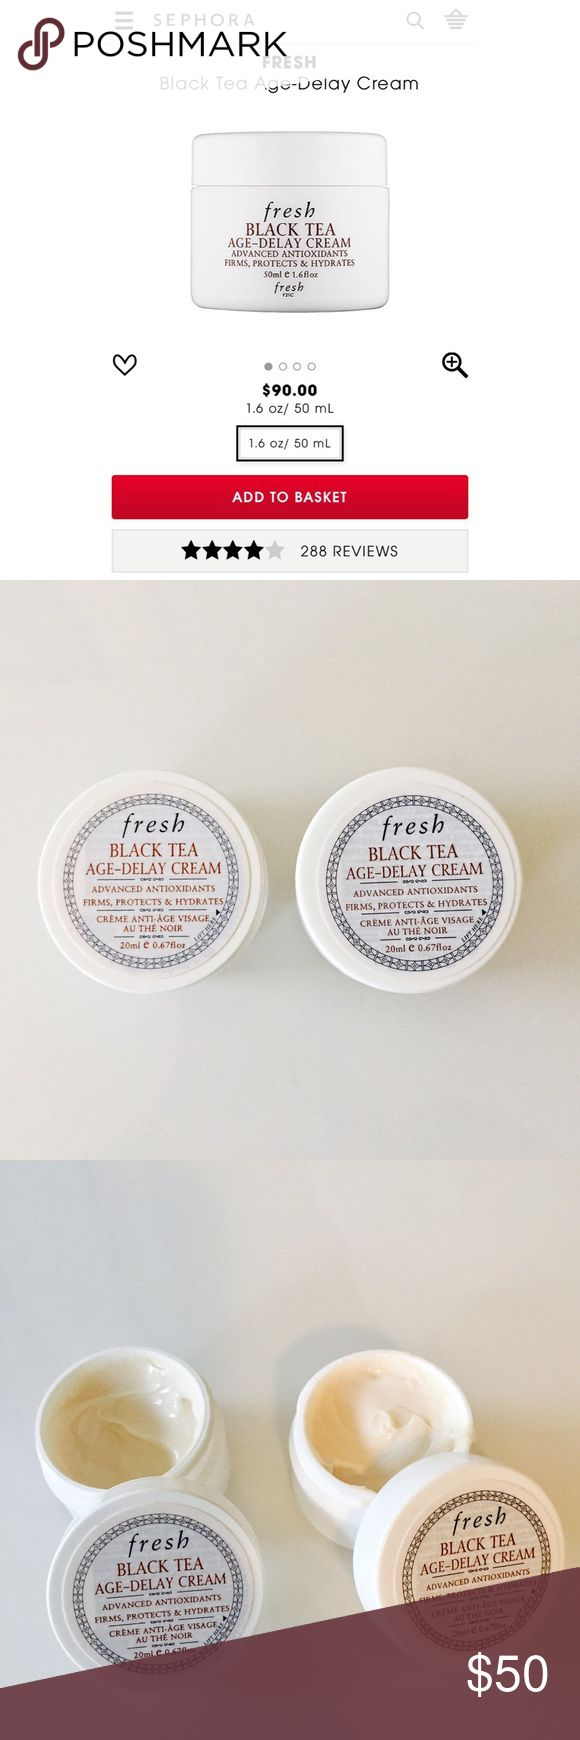 Fresh black tea age delay cream Highly rated fresh black tea age delay cream. This is for two .67fl oz = 1.34fl oz of the cream. Retails for $90 at 1.6fl. One is brand new, unused and the second has been used just twice. Great product just have too much skincare. fresh  Makeup